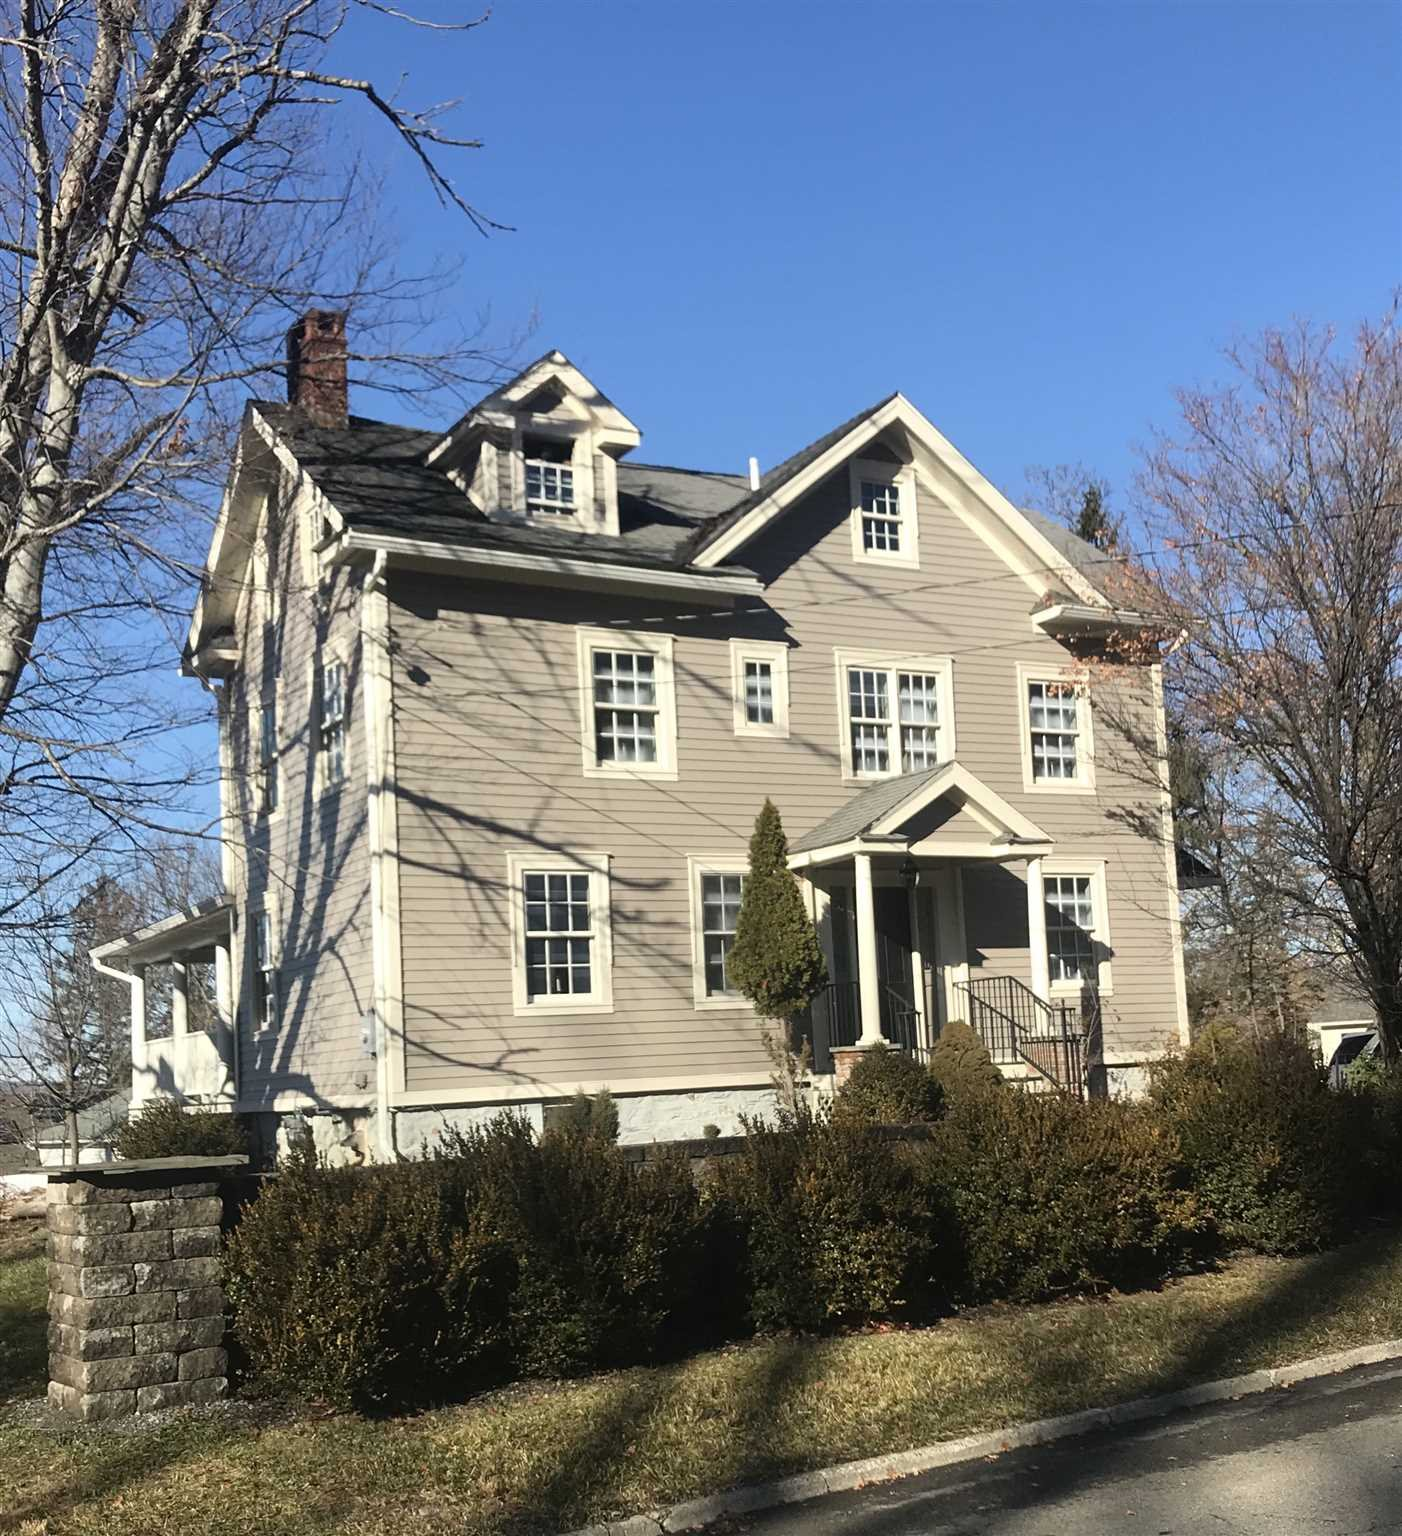 Single Family Home for Sale at 119 HOWLAND Avenue 119 HOWLAND Avenue Beacon, New York 12508 United States